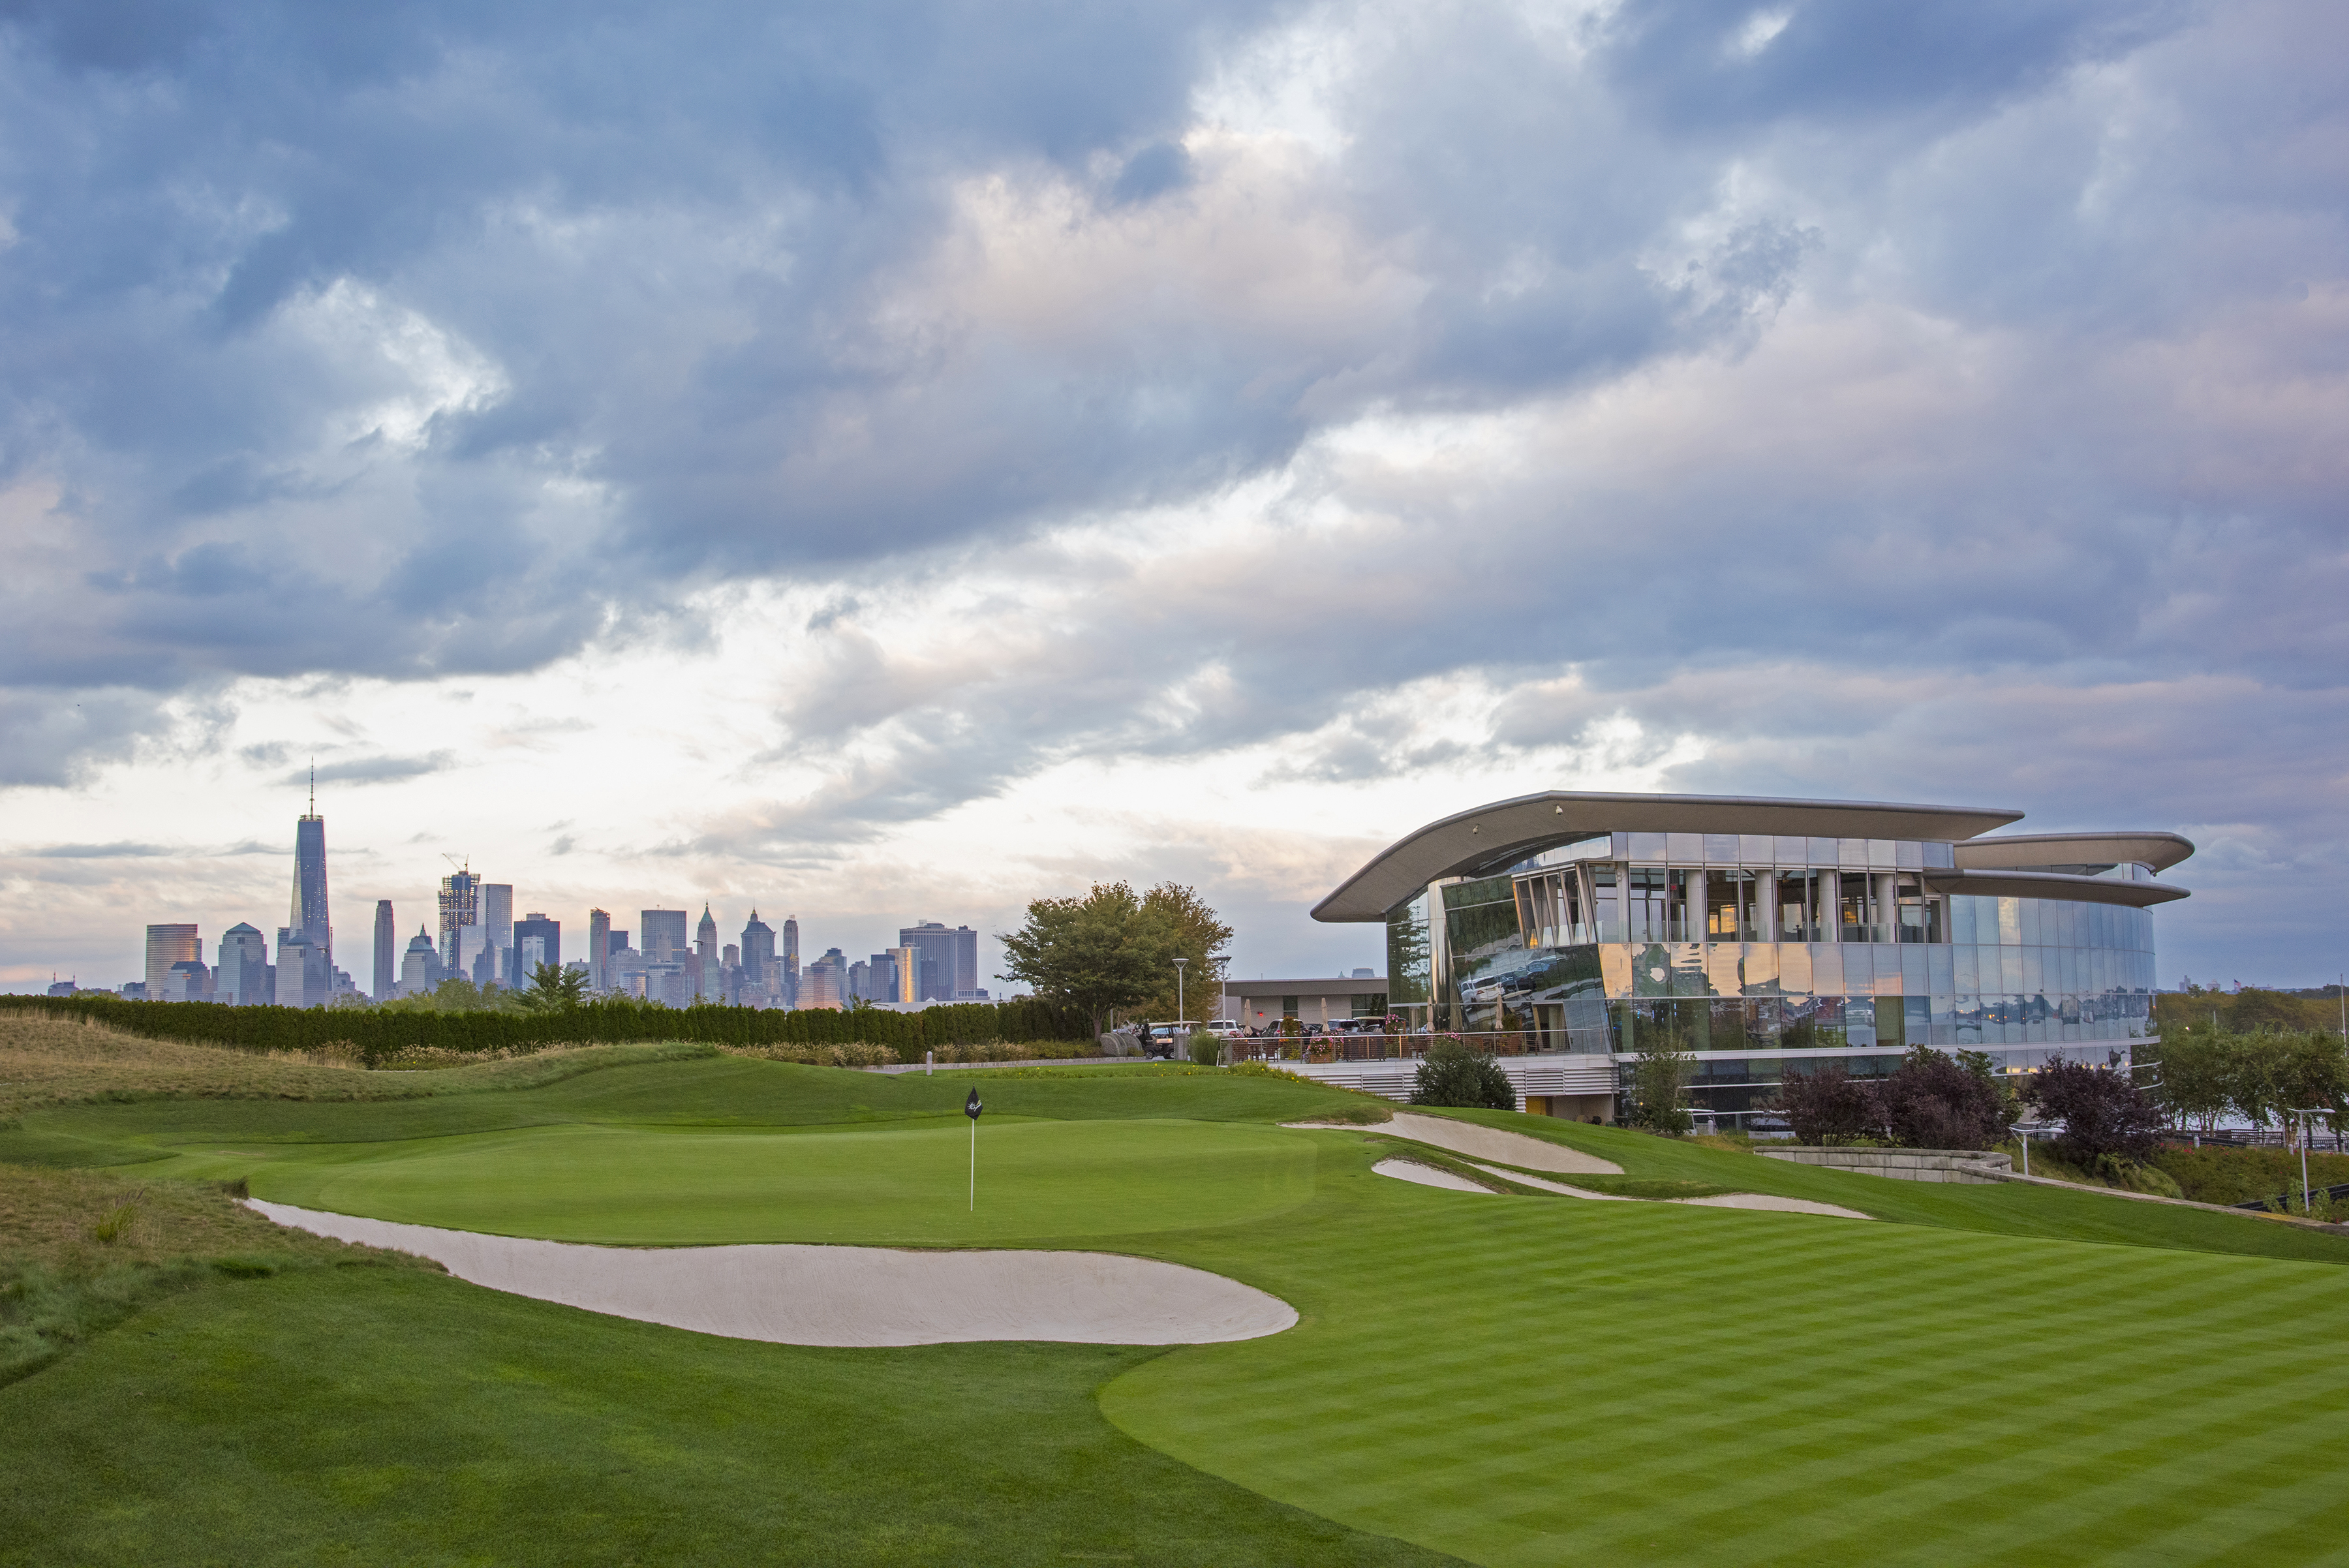 JERSEY CITY, NJ - OCTOBER 3: The 18th hole (Presidents Cup 14th hole) at Liberty National Golf Club, host course of the 2017 Presidents Cup in Jersey City, New Jersey on Ocotber 3, 2016. (Photo by Chris Condon/PGA TOUR)